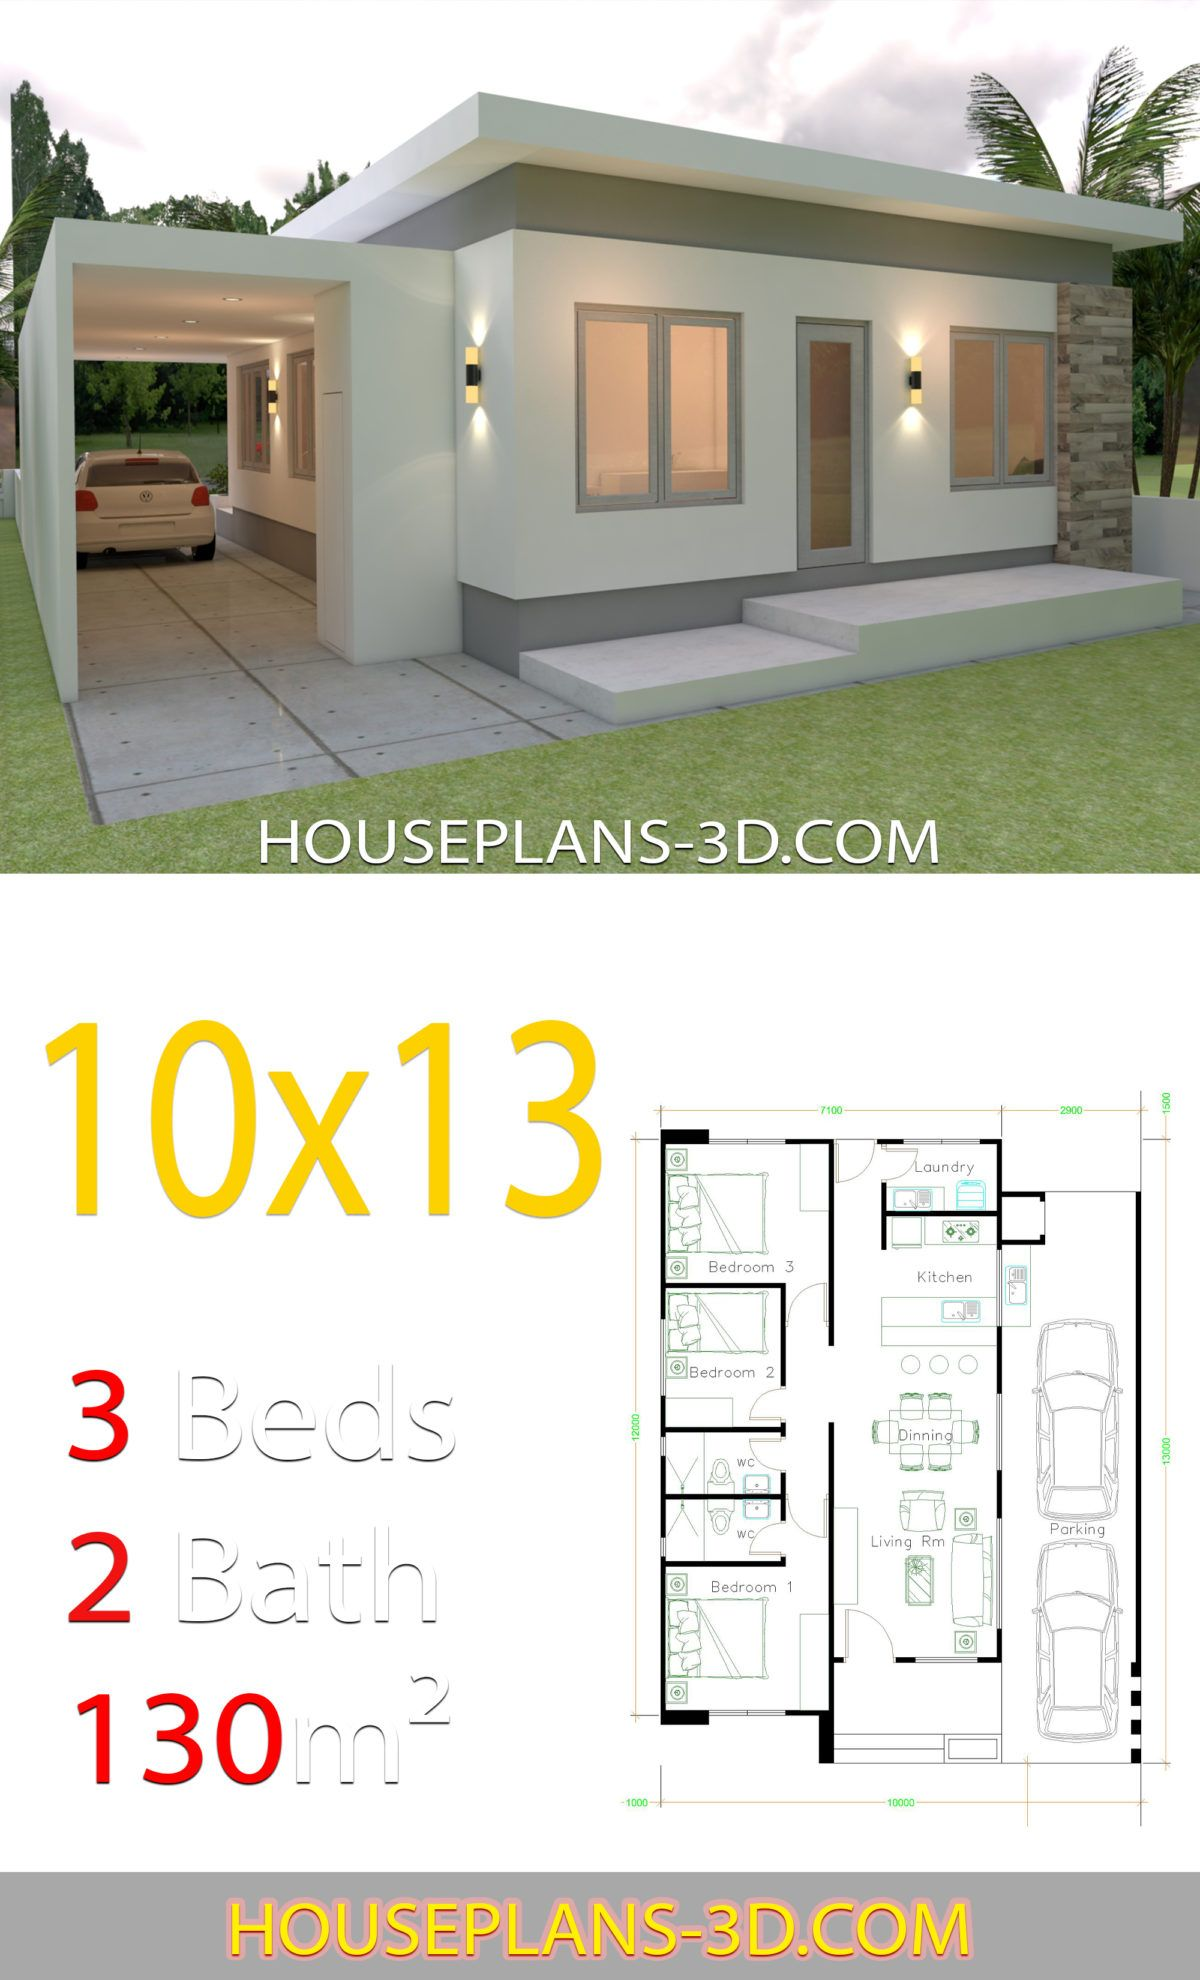 Amazing Low Budget Modern 3 Bedroom House Design Beauty 70 For Interior With In Three Bedroom House Plan Two Bedroom House Design House Interior Design Bedroom